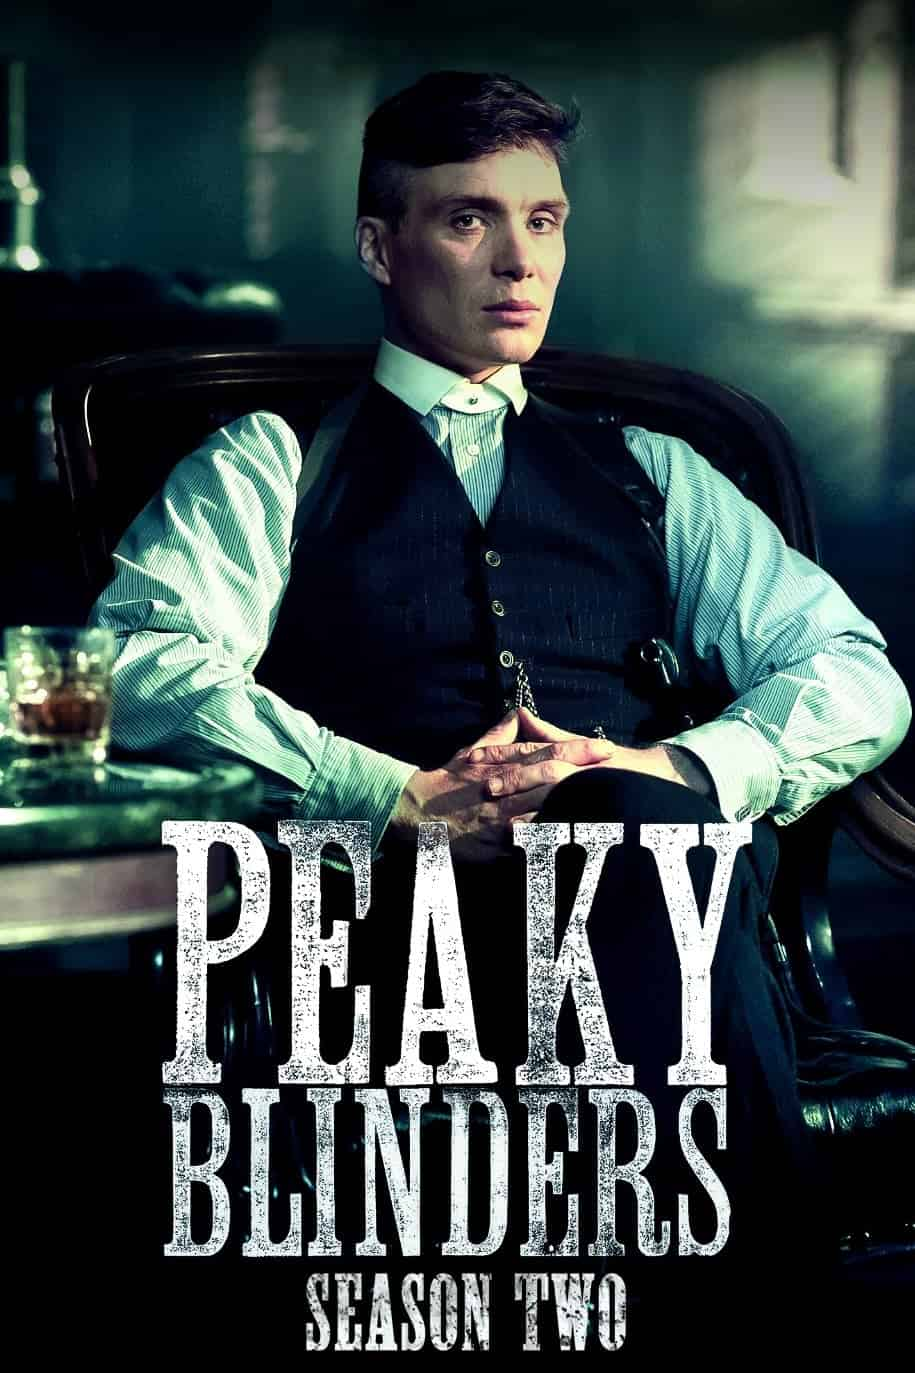 Peaky Blinders Season 2 (2014)